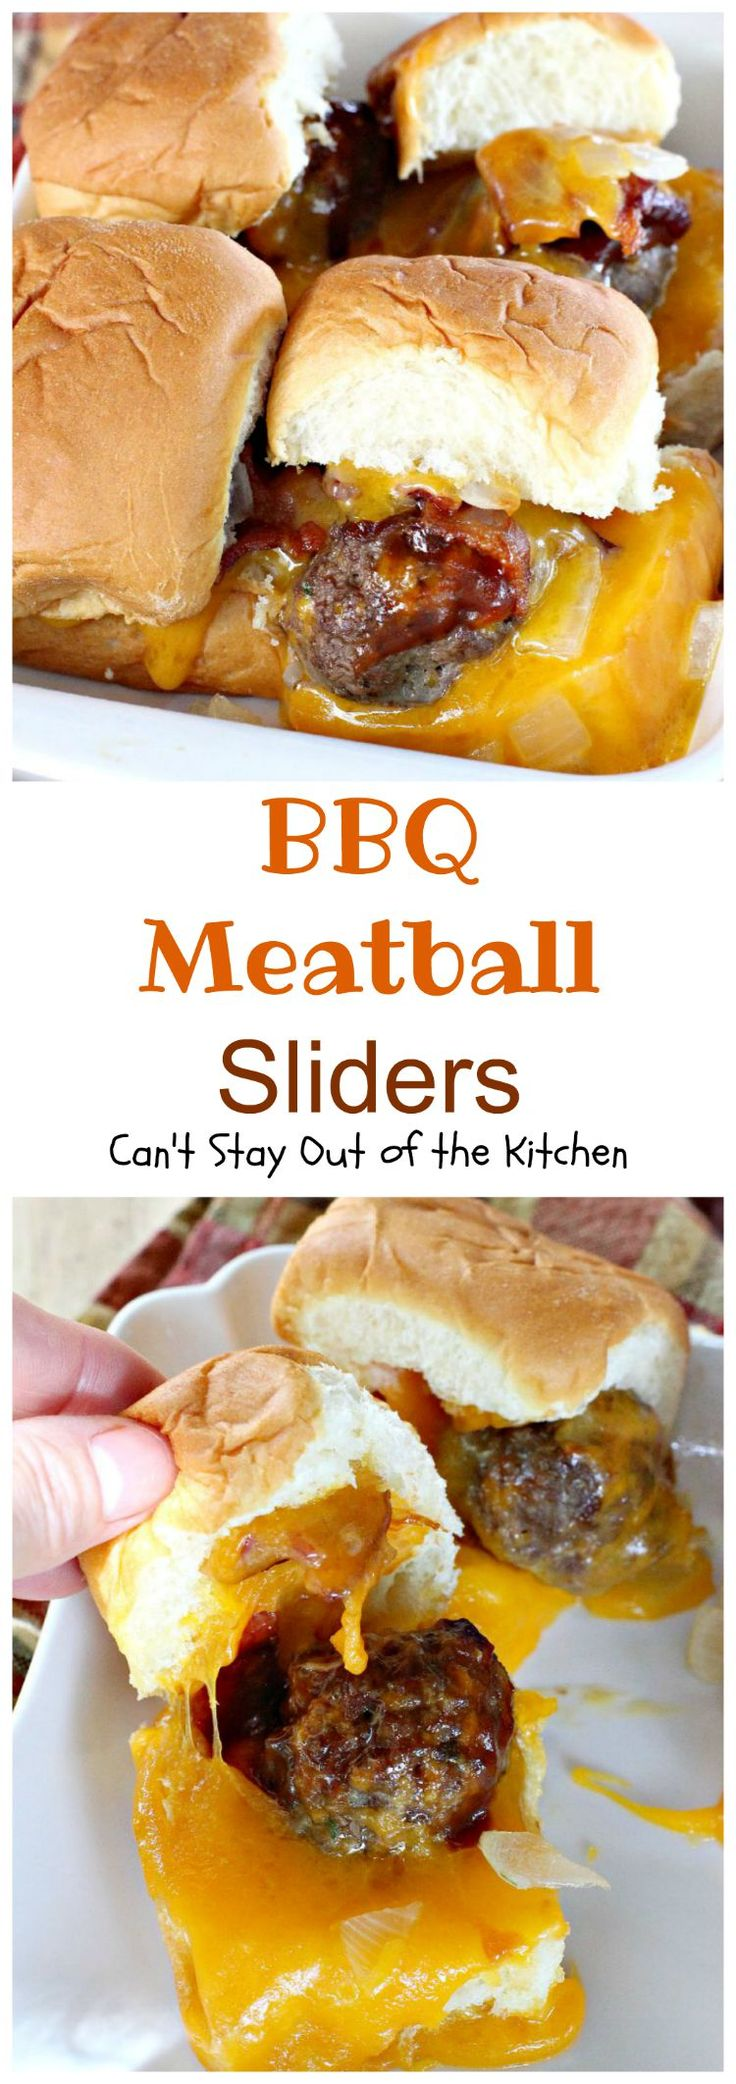 These fabulous sliders are extra gooey with cheese, filled with bbq meatballs, bacon and onions and served on King's Hawaiian Sweet Rolls for spectacular taste.